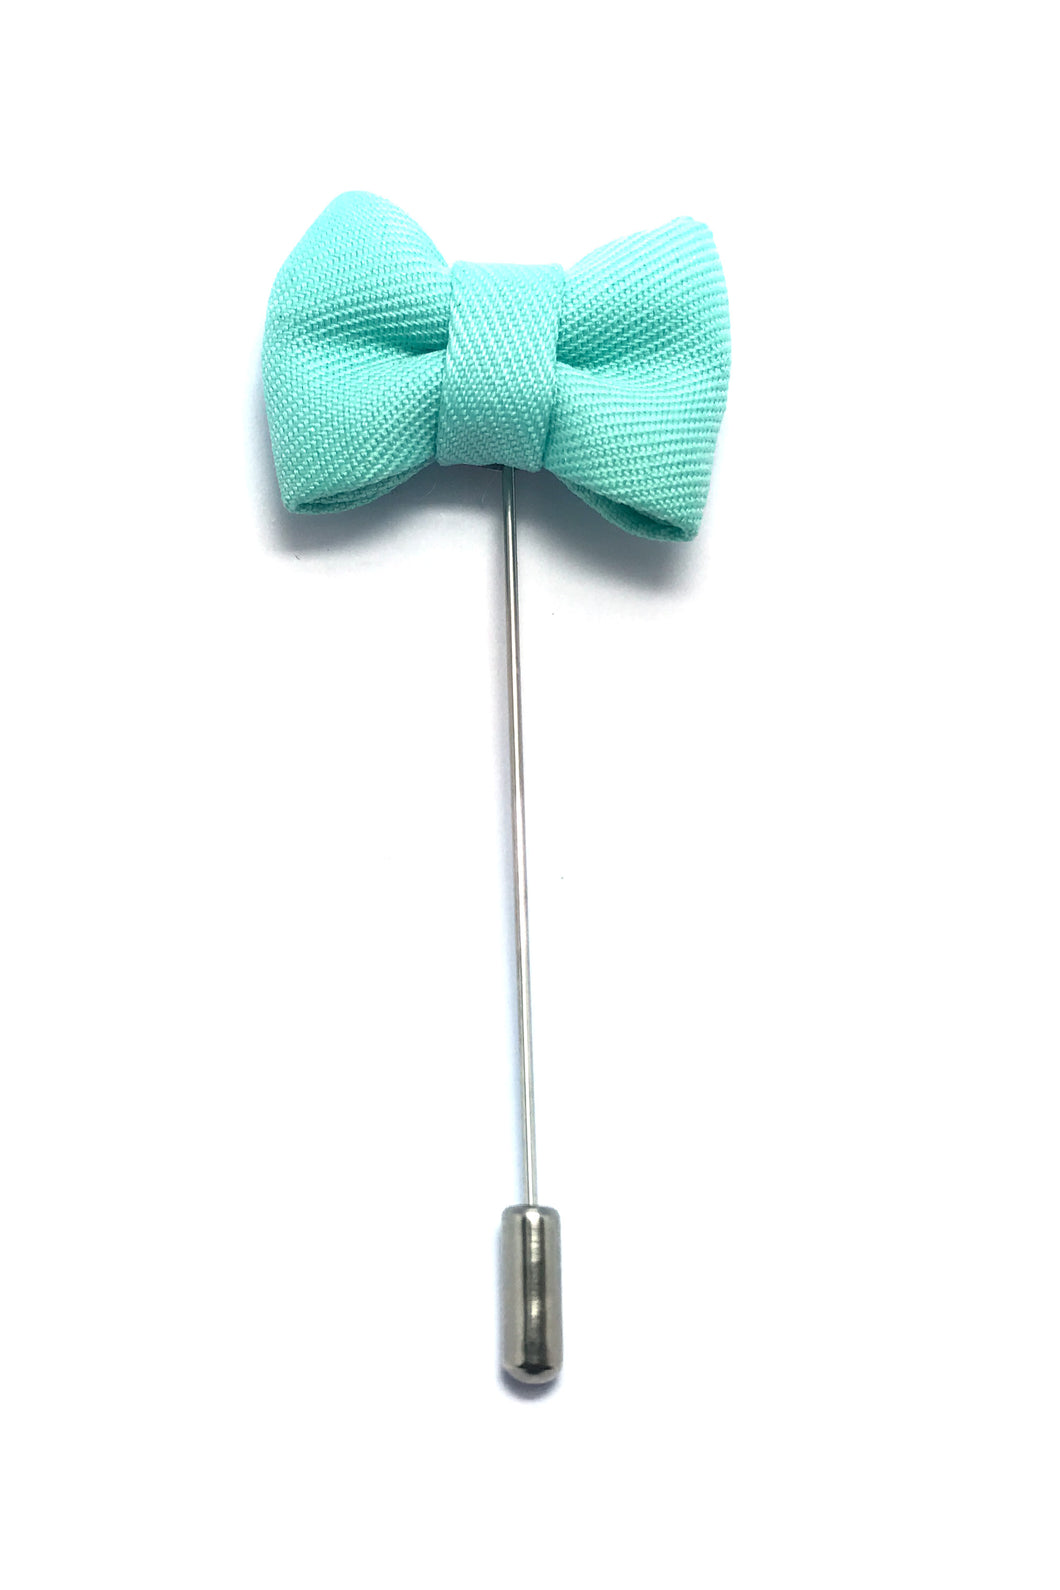 Lapel Pins - Seafoam Green Bow Tie